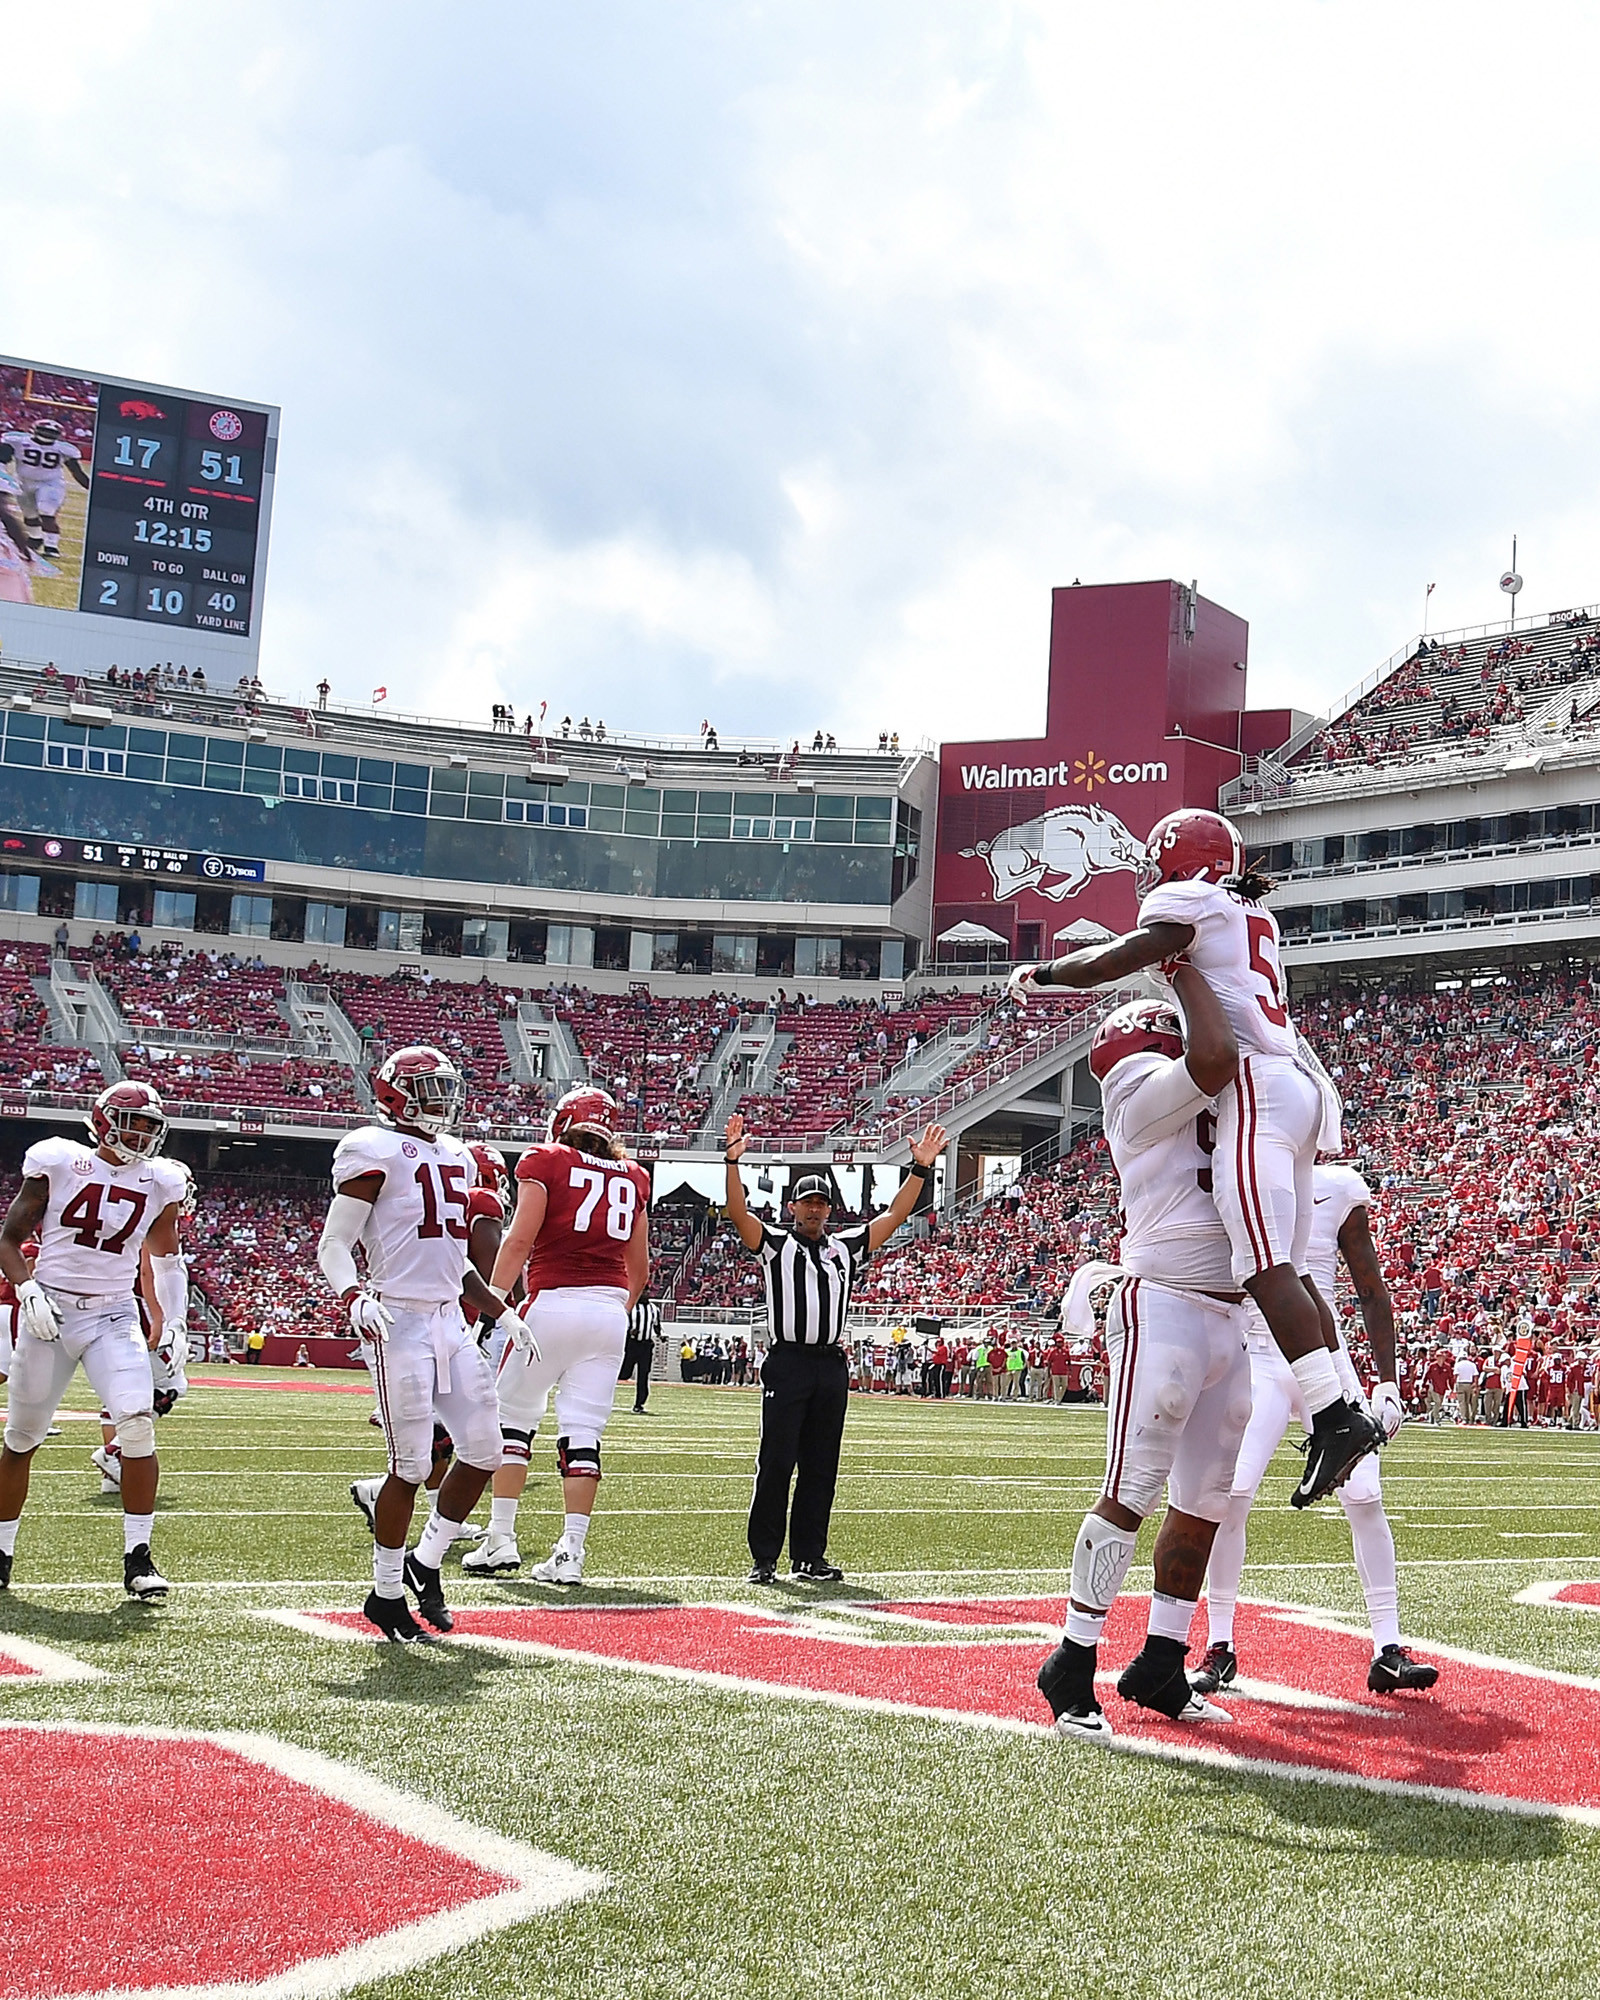 Alabama Crimson Tide defensive back Shyheim Carter (5) with a pick-six in the second half of the NCAA football game against the Arkansas Razorbacks at Razorback Stadium on Oct. 6, 2018, in Fayetteville, Ark. Alabama defeated Arkansas 65-31. (Photo by Lee Walls) )